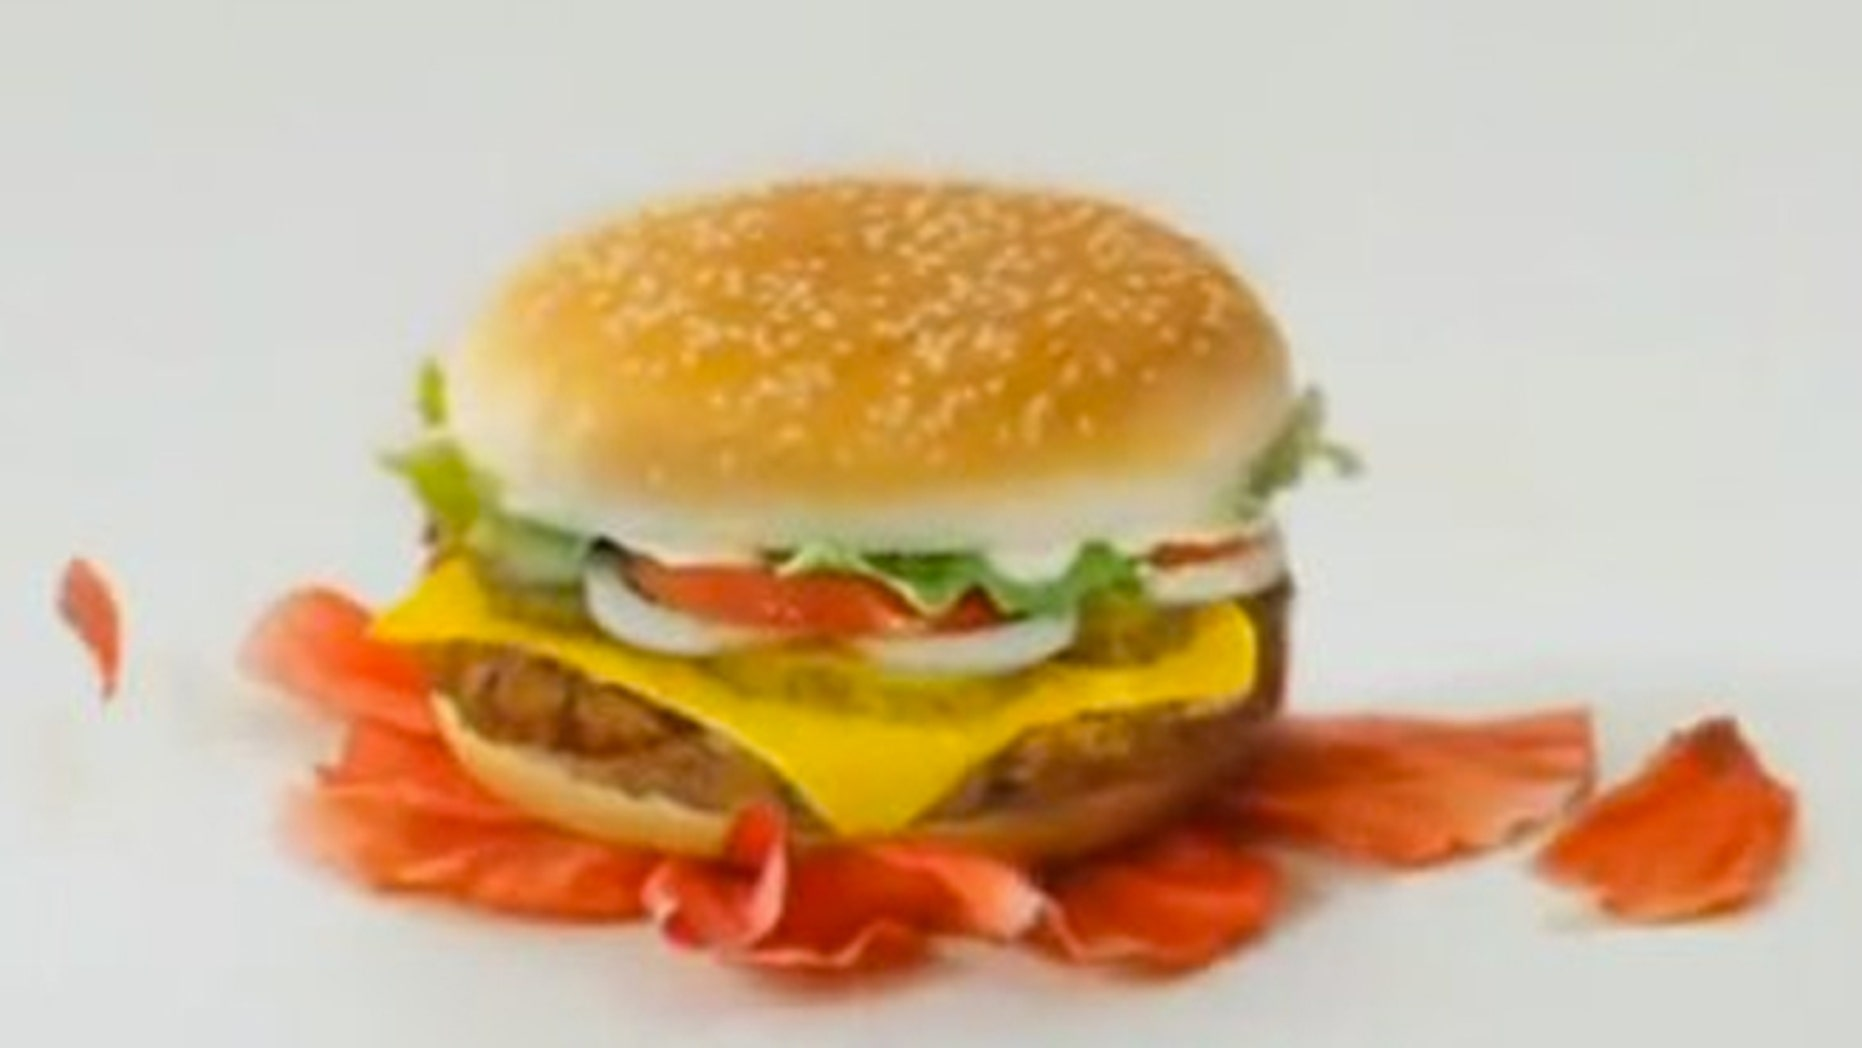 The controversial ad shows a Whopper smashing a poppy flower.